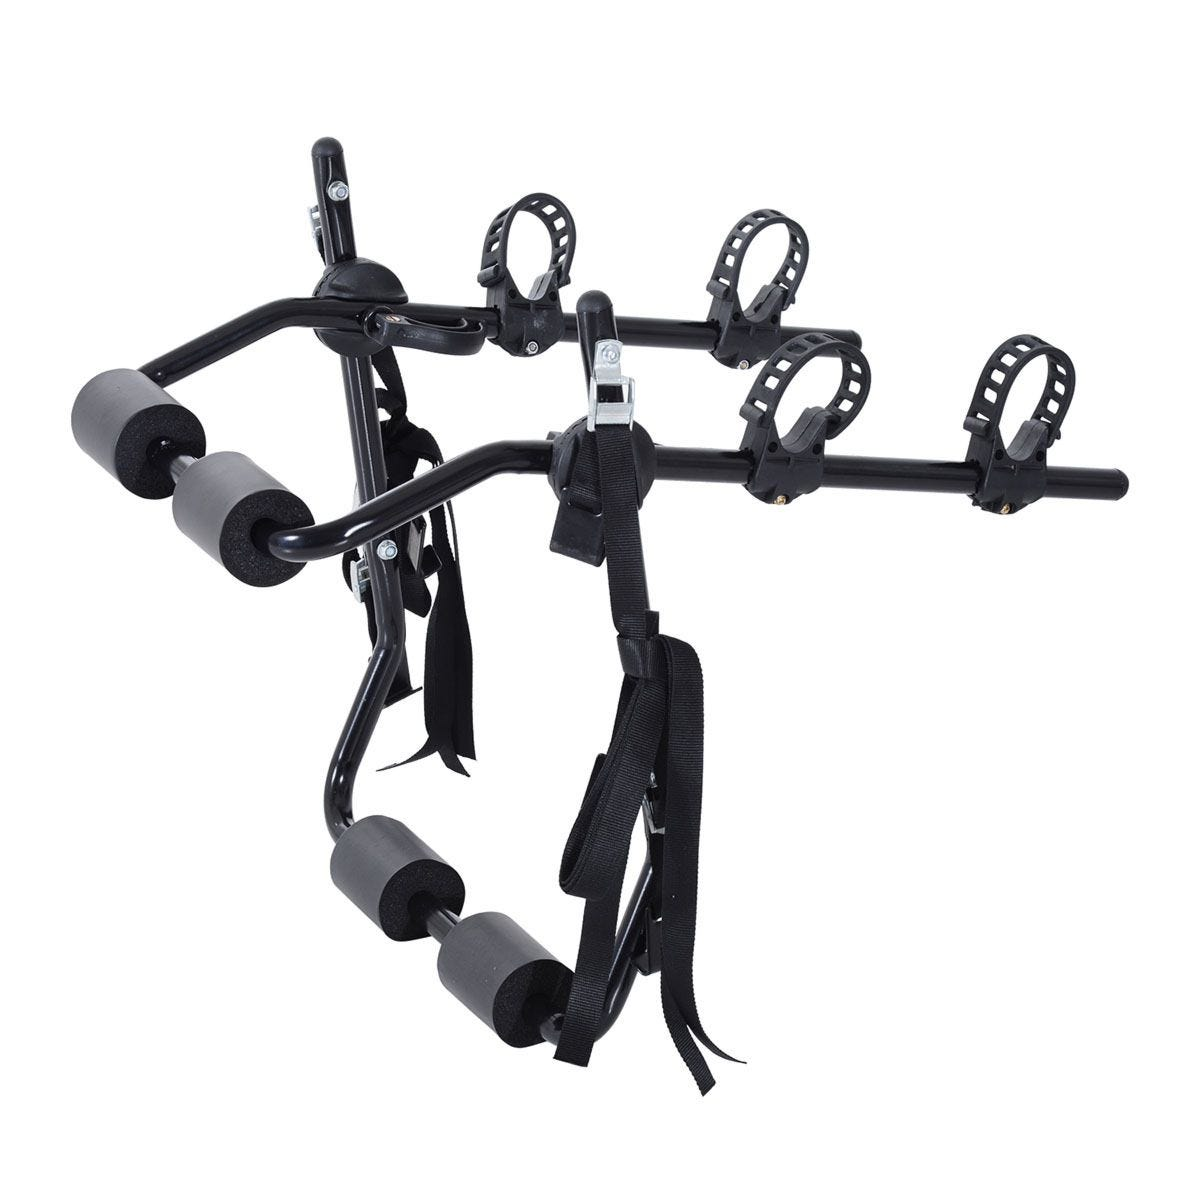 Outsunny 2 Bike Rack Transport Mountain with Fix Strap - Black